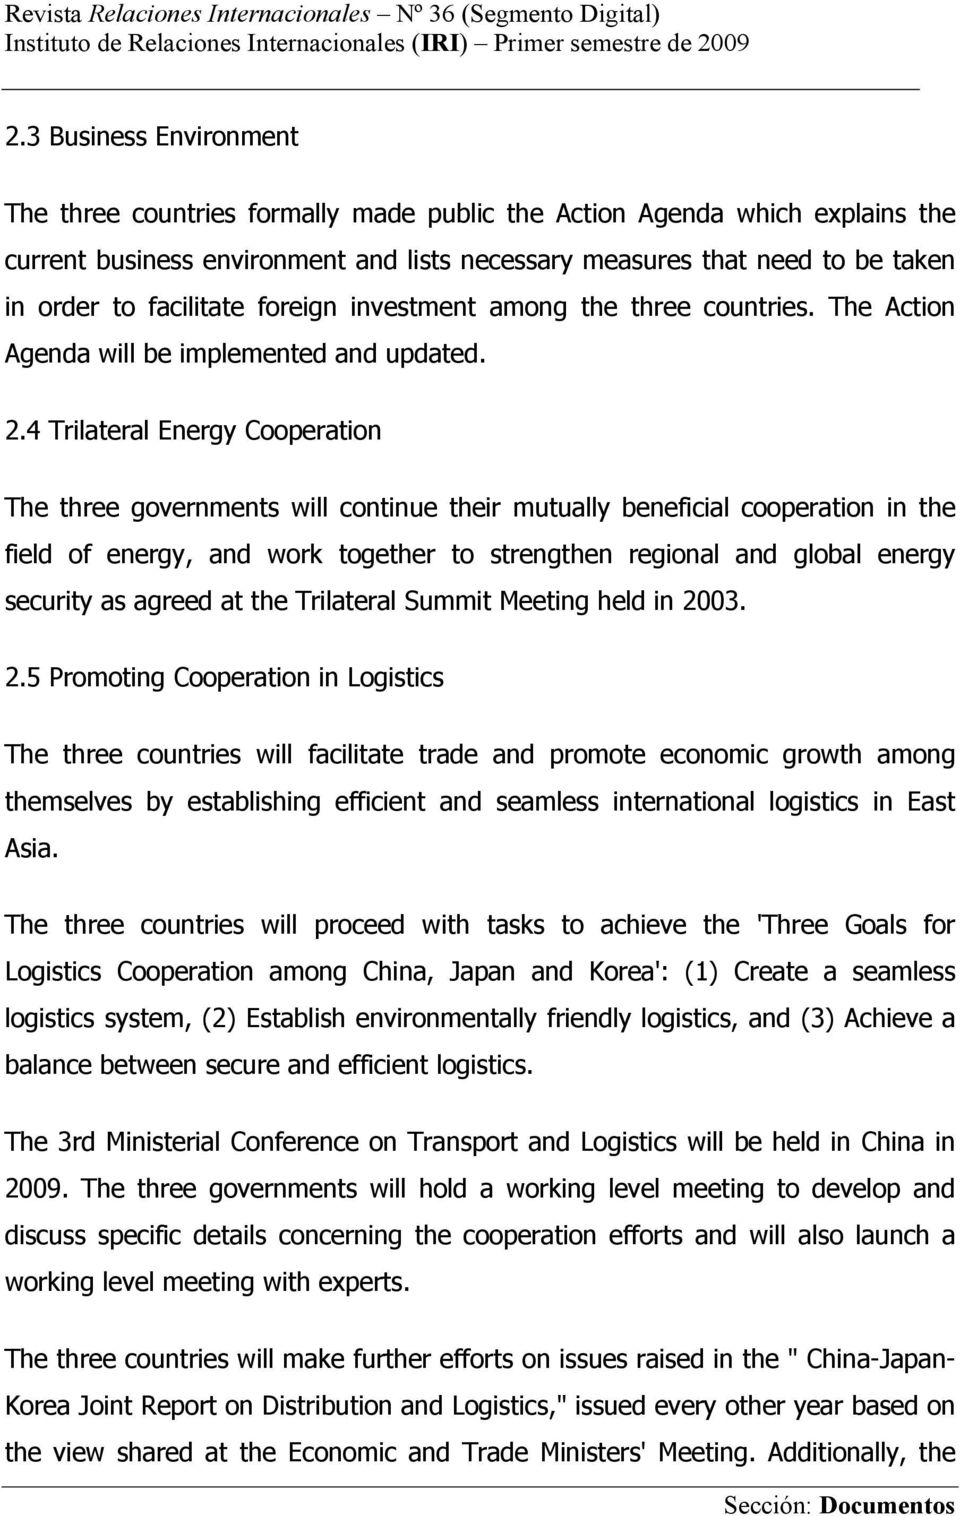 4 Trilateral Energy Cooperation The three governments will continue their mutually beneficial cooperation in the field of energy, and work together to strengthen regional and global energy security